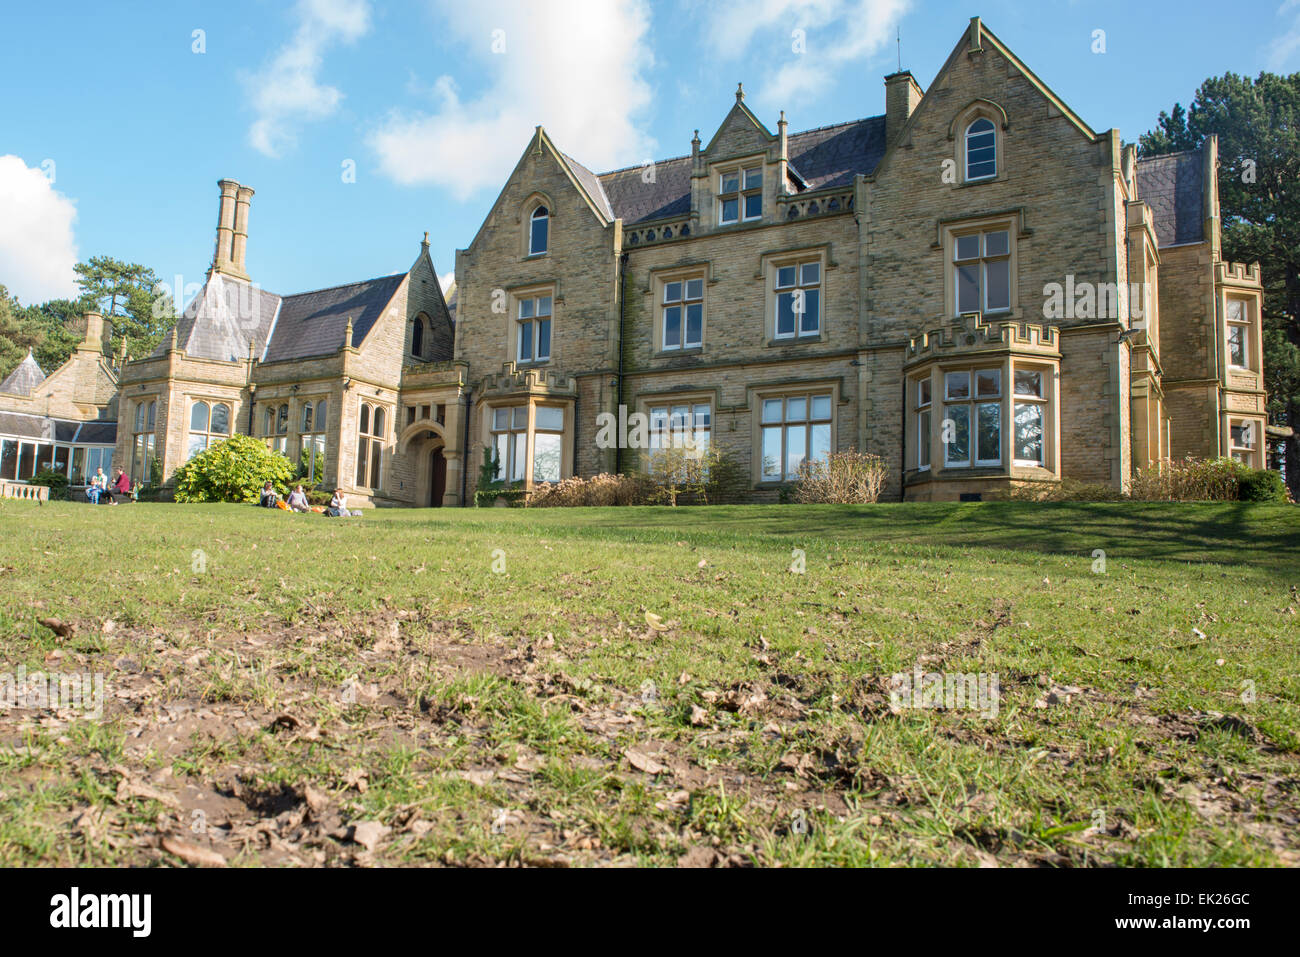 Bruntwood Hall, Cheadle, Cheshire - Stock Image